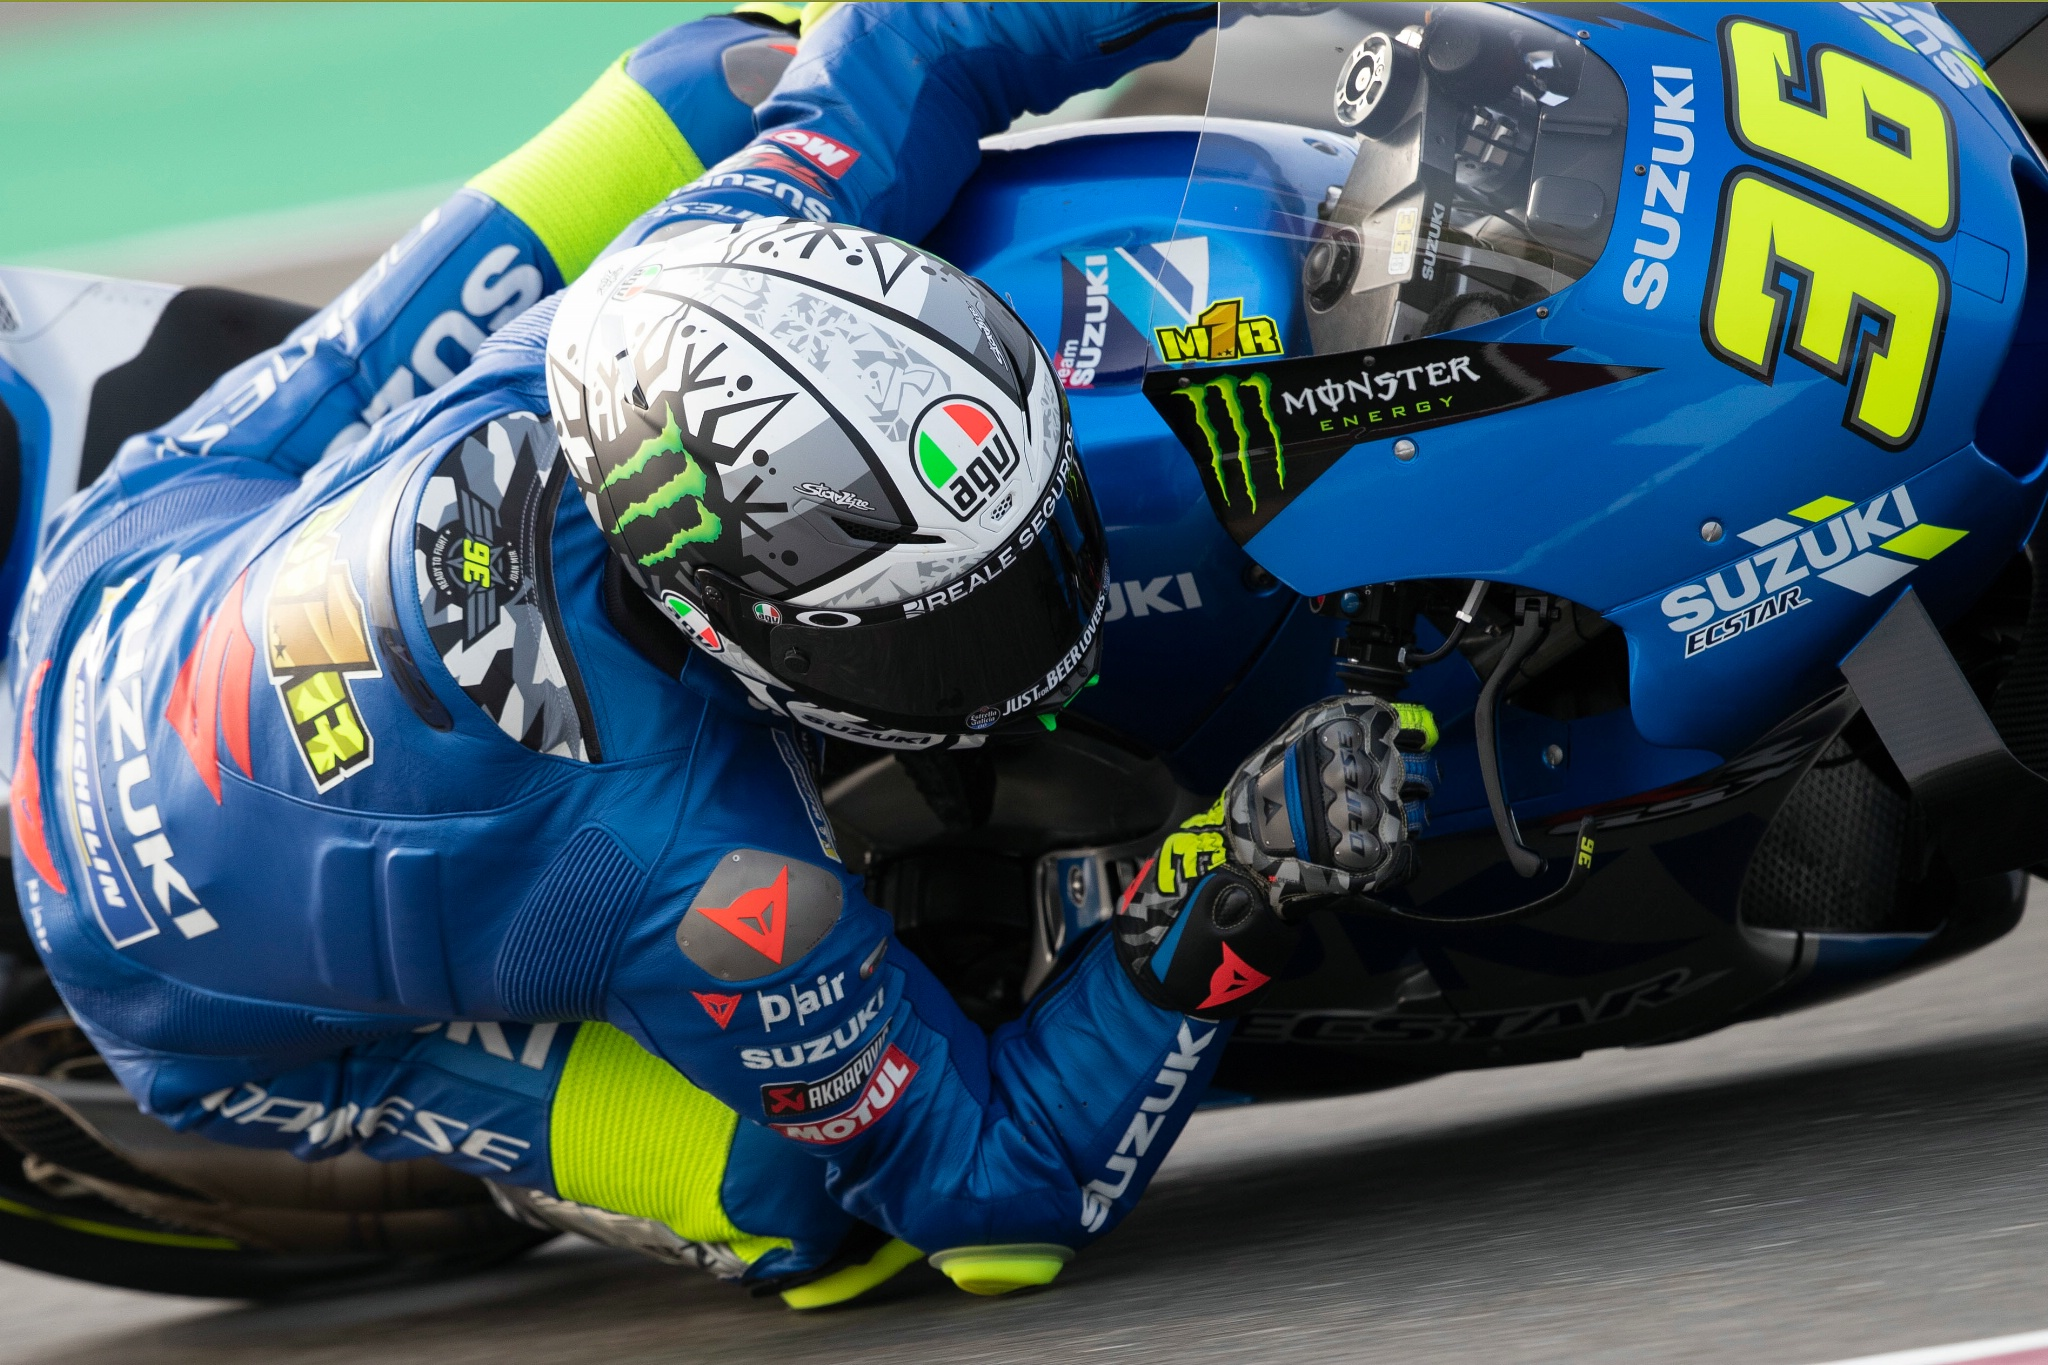 Joan Mir Qatar MotoGP test, 10 March 2021